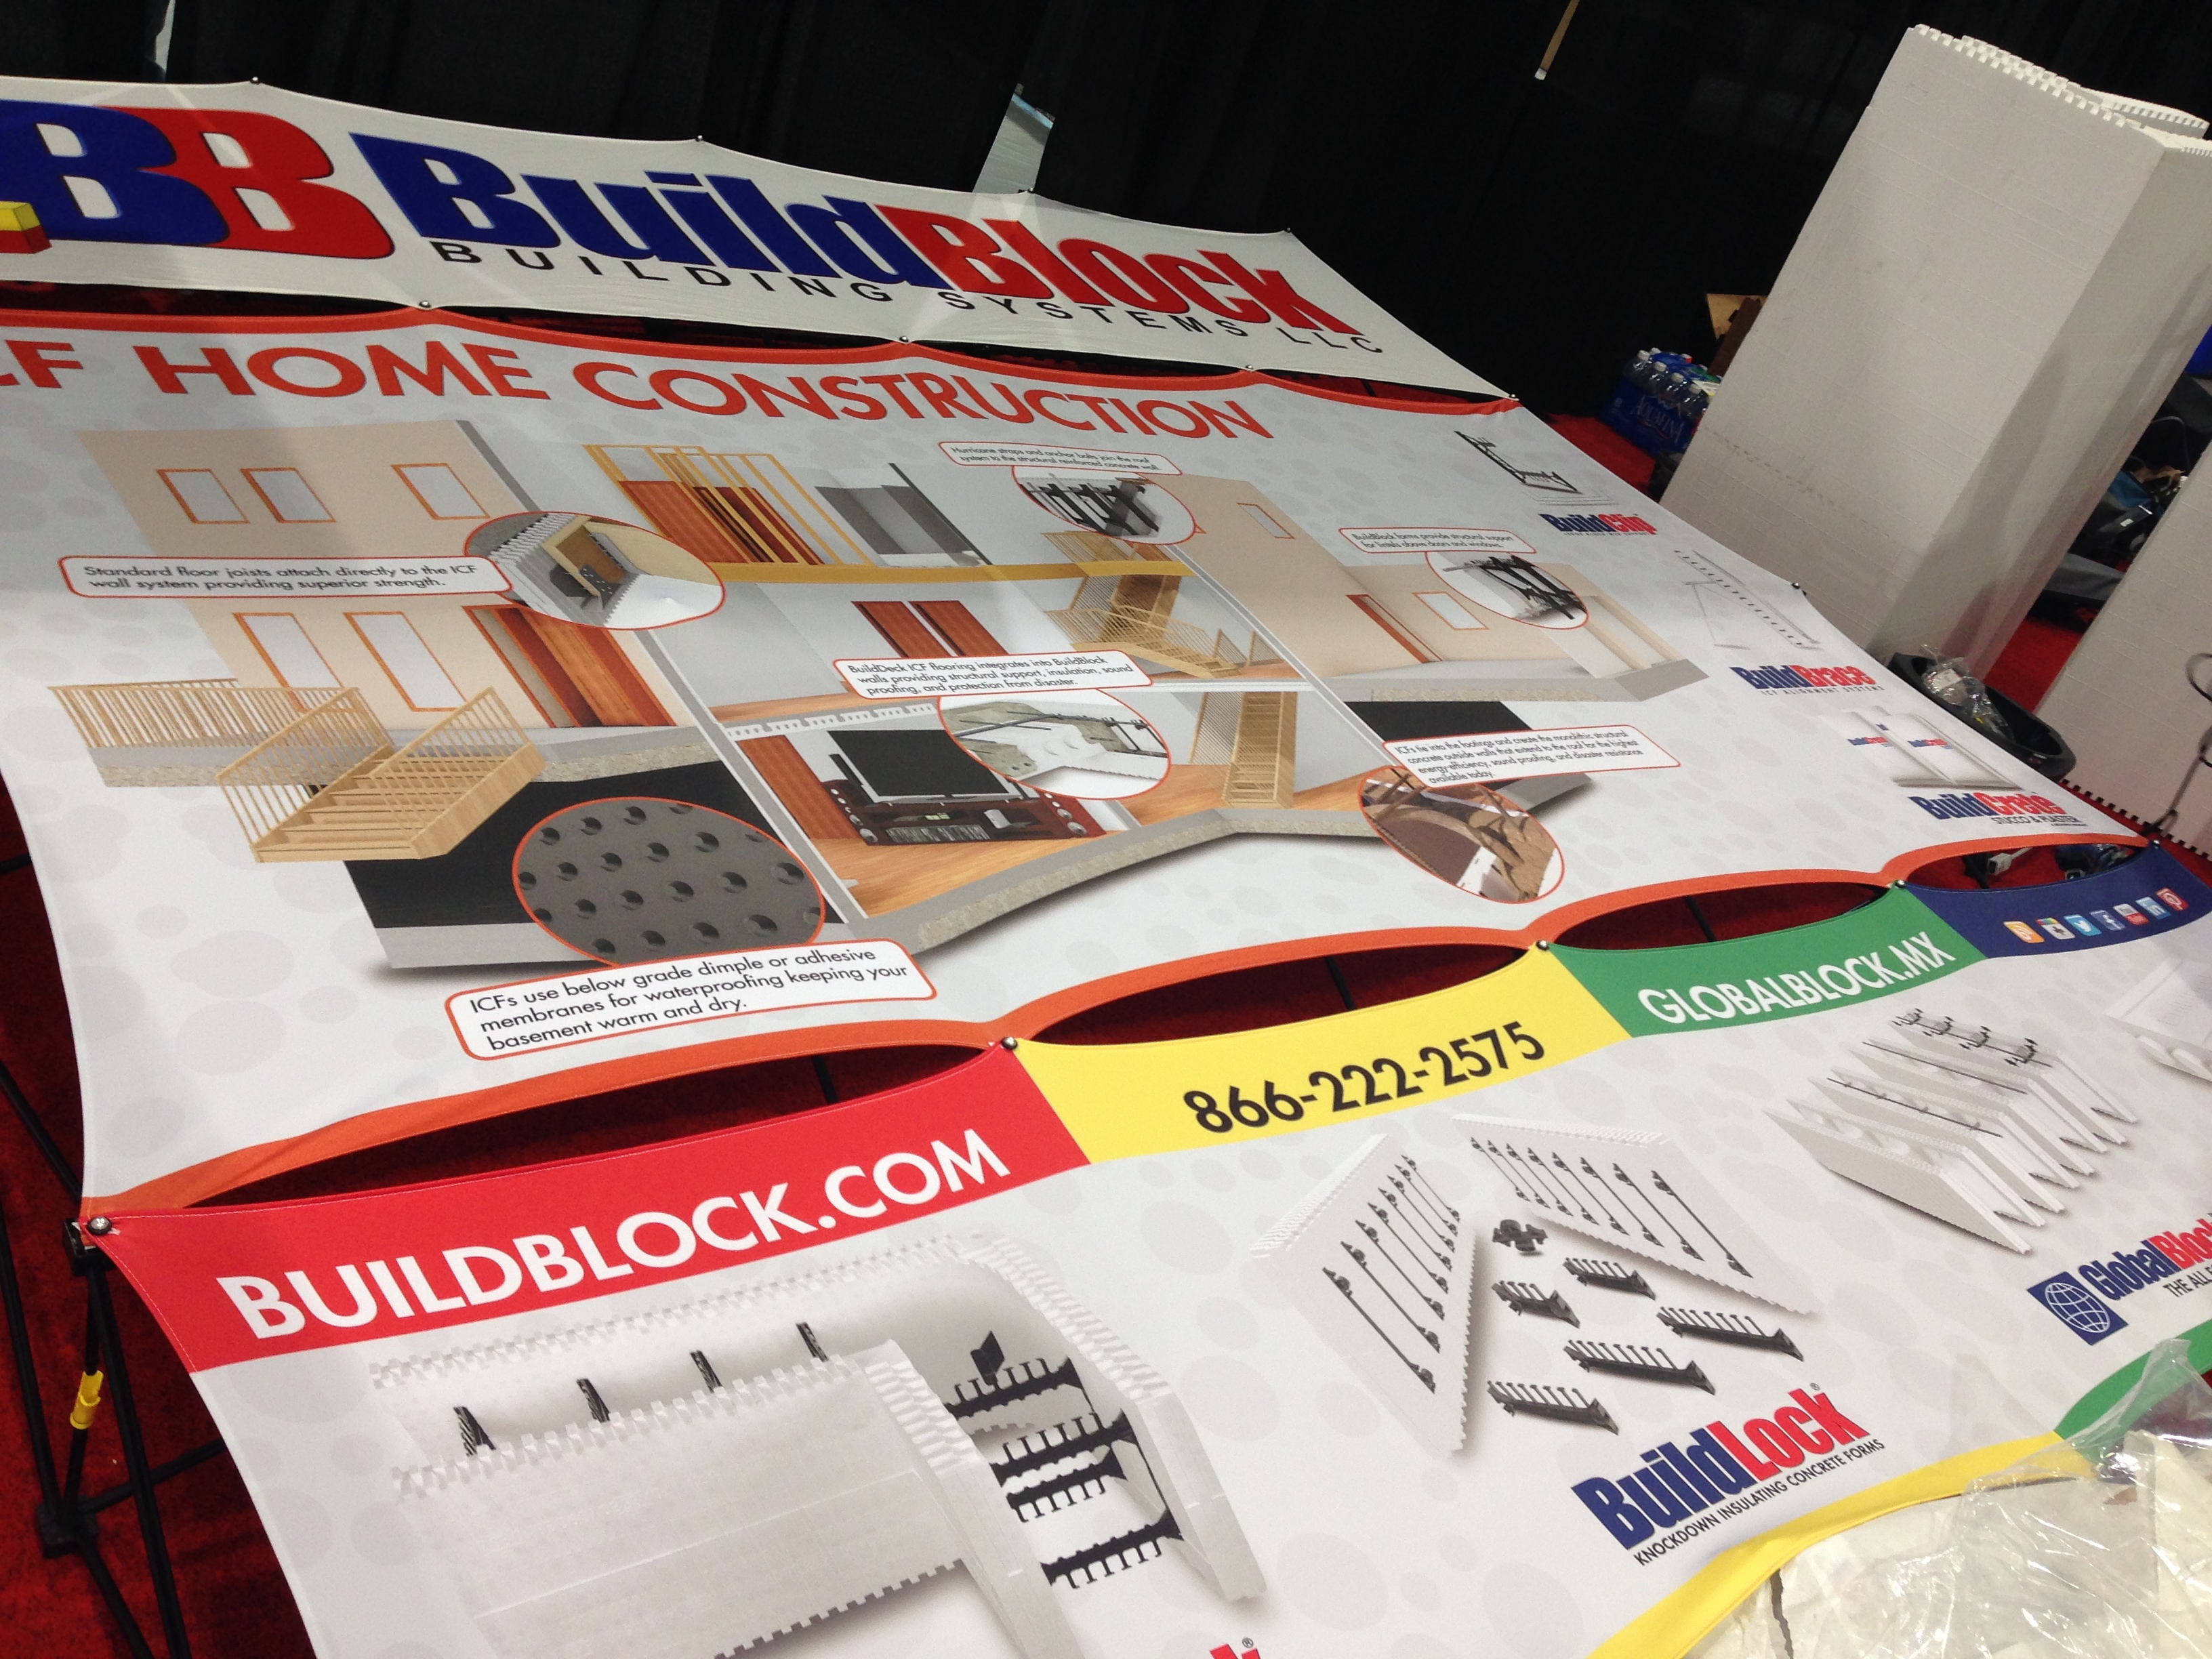 BuildBlock at 2015 World of Concrete